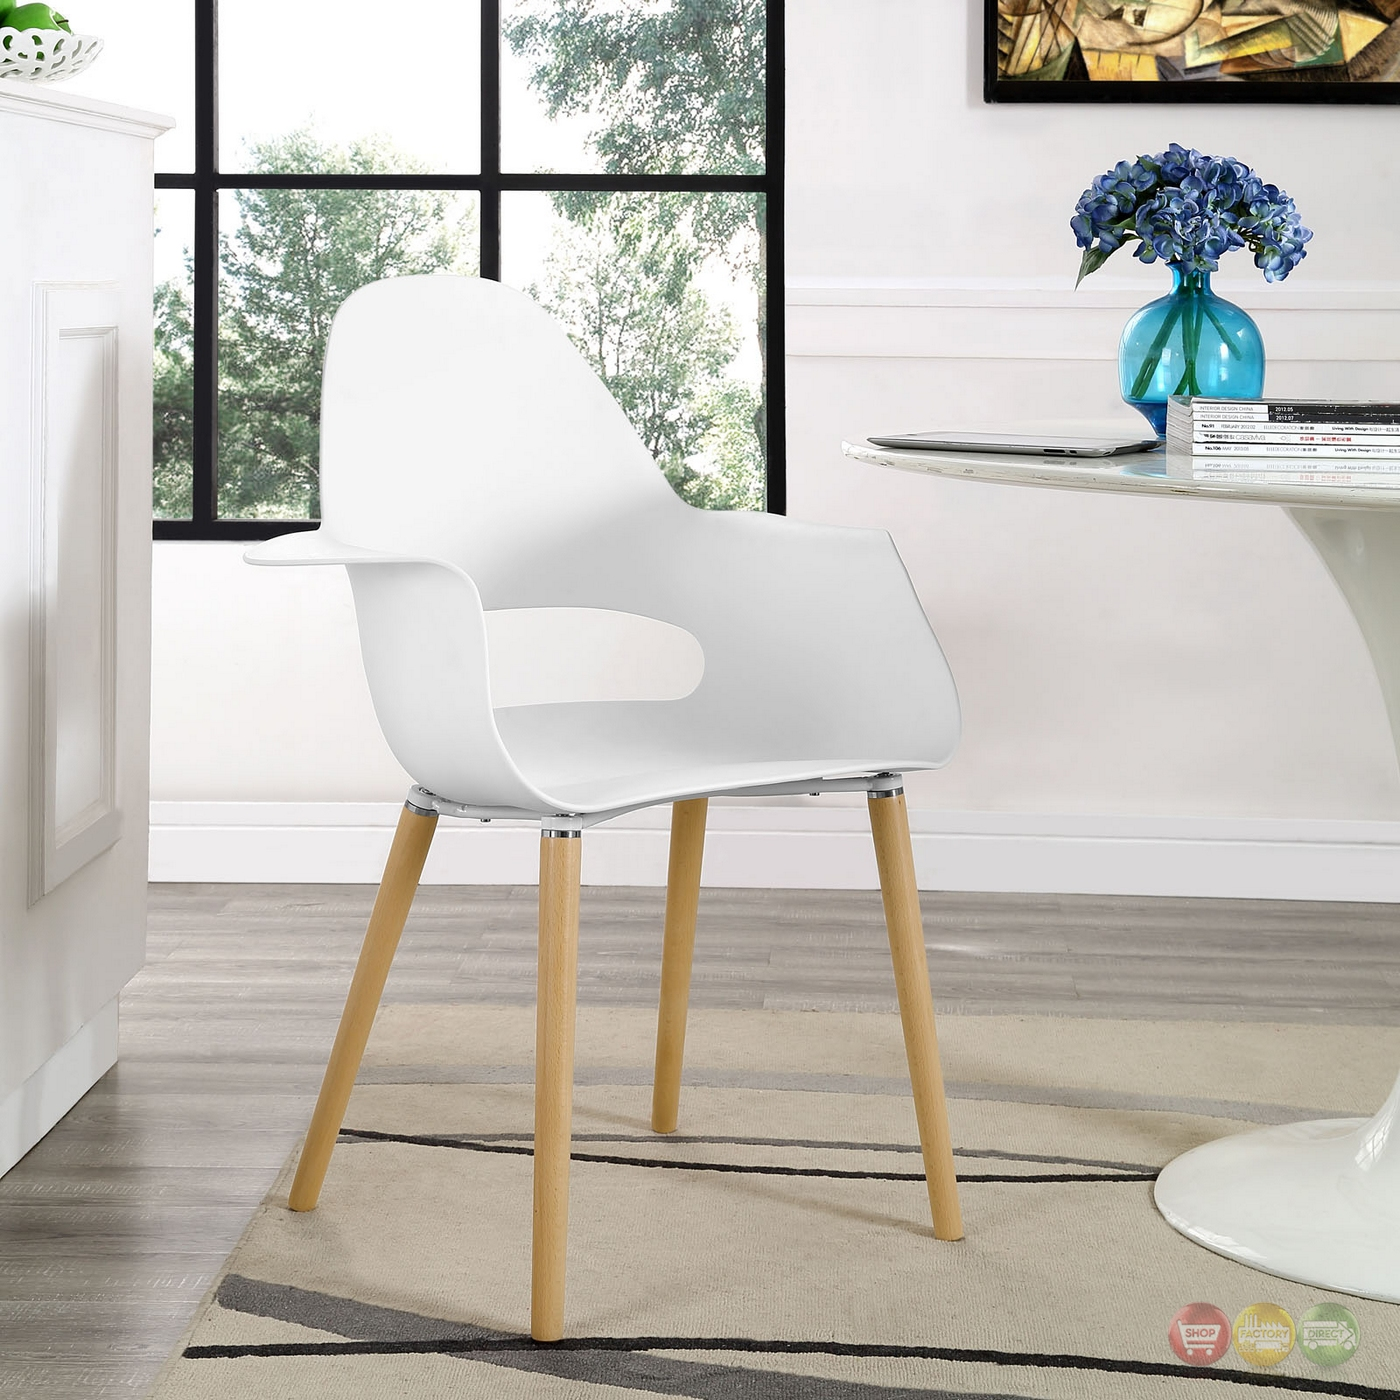 Soar Modern Hard Plastic Dining Armchair With Wooden Legs ...